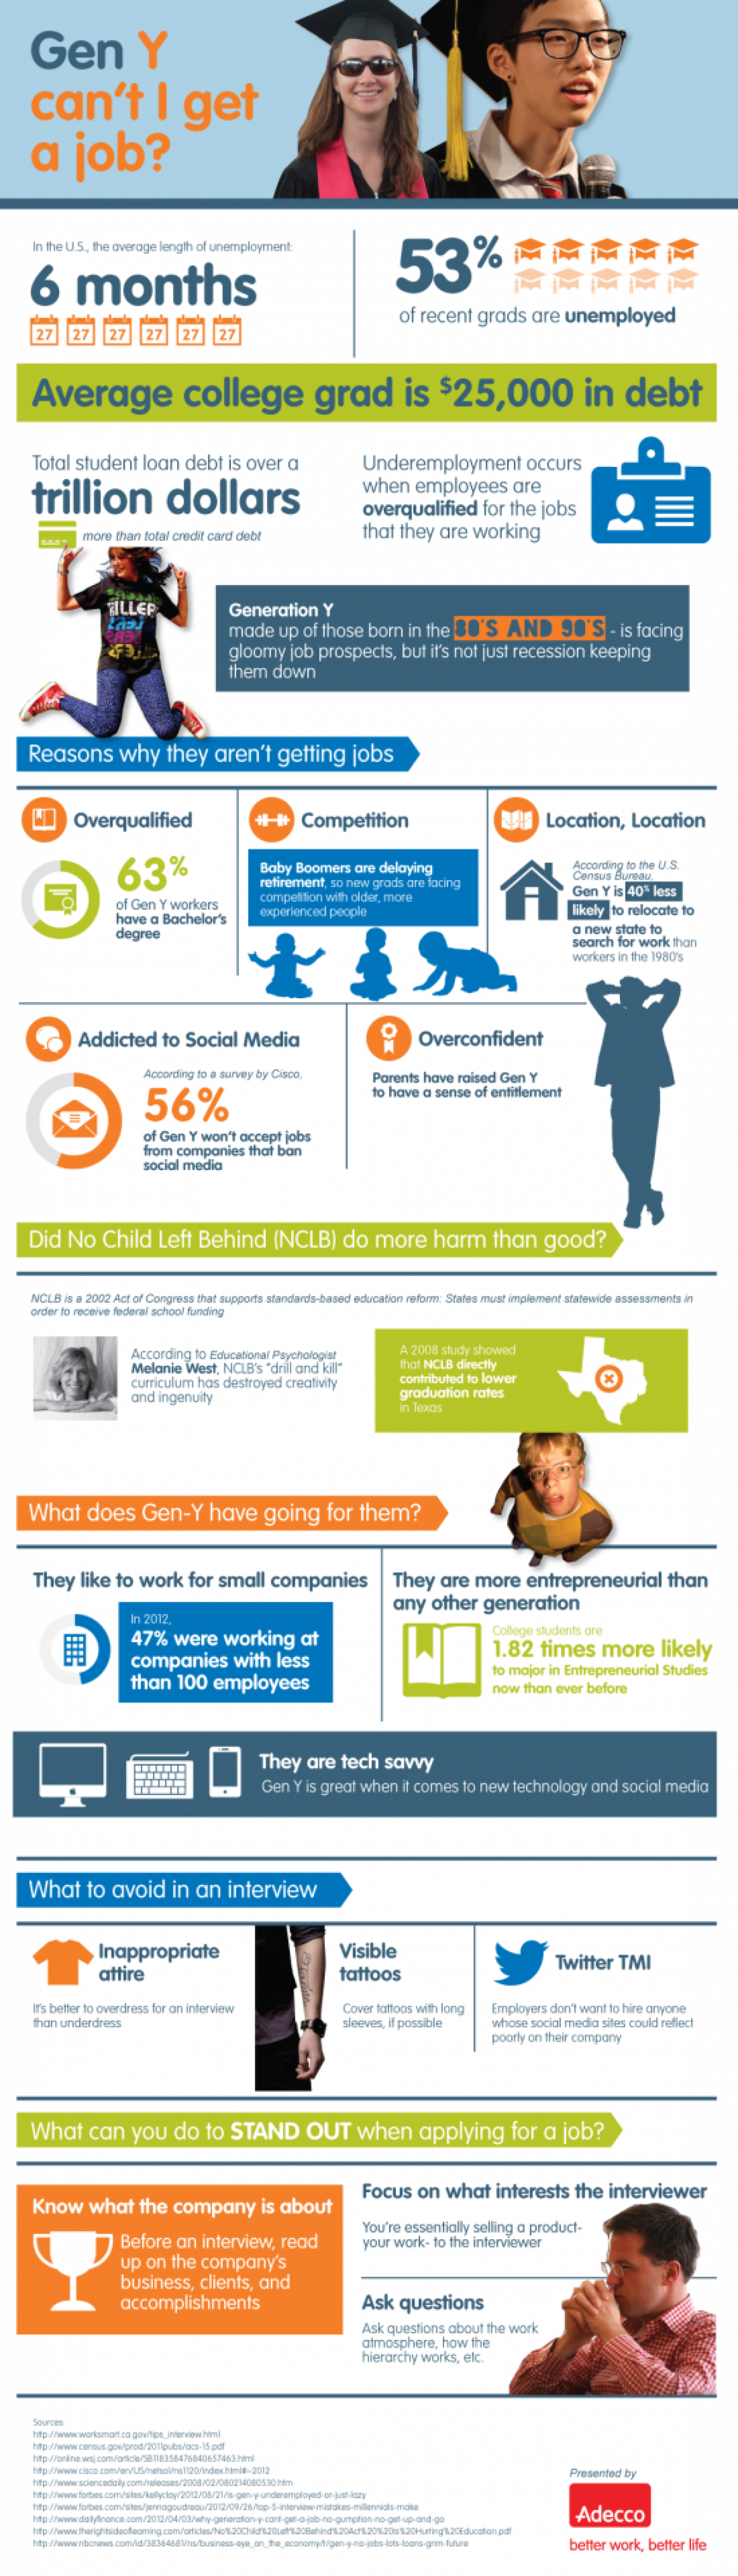 Gen Y Can't I Get a Job? Infographic